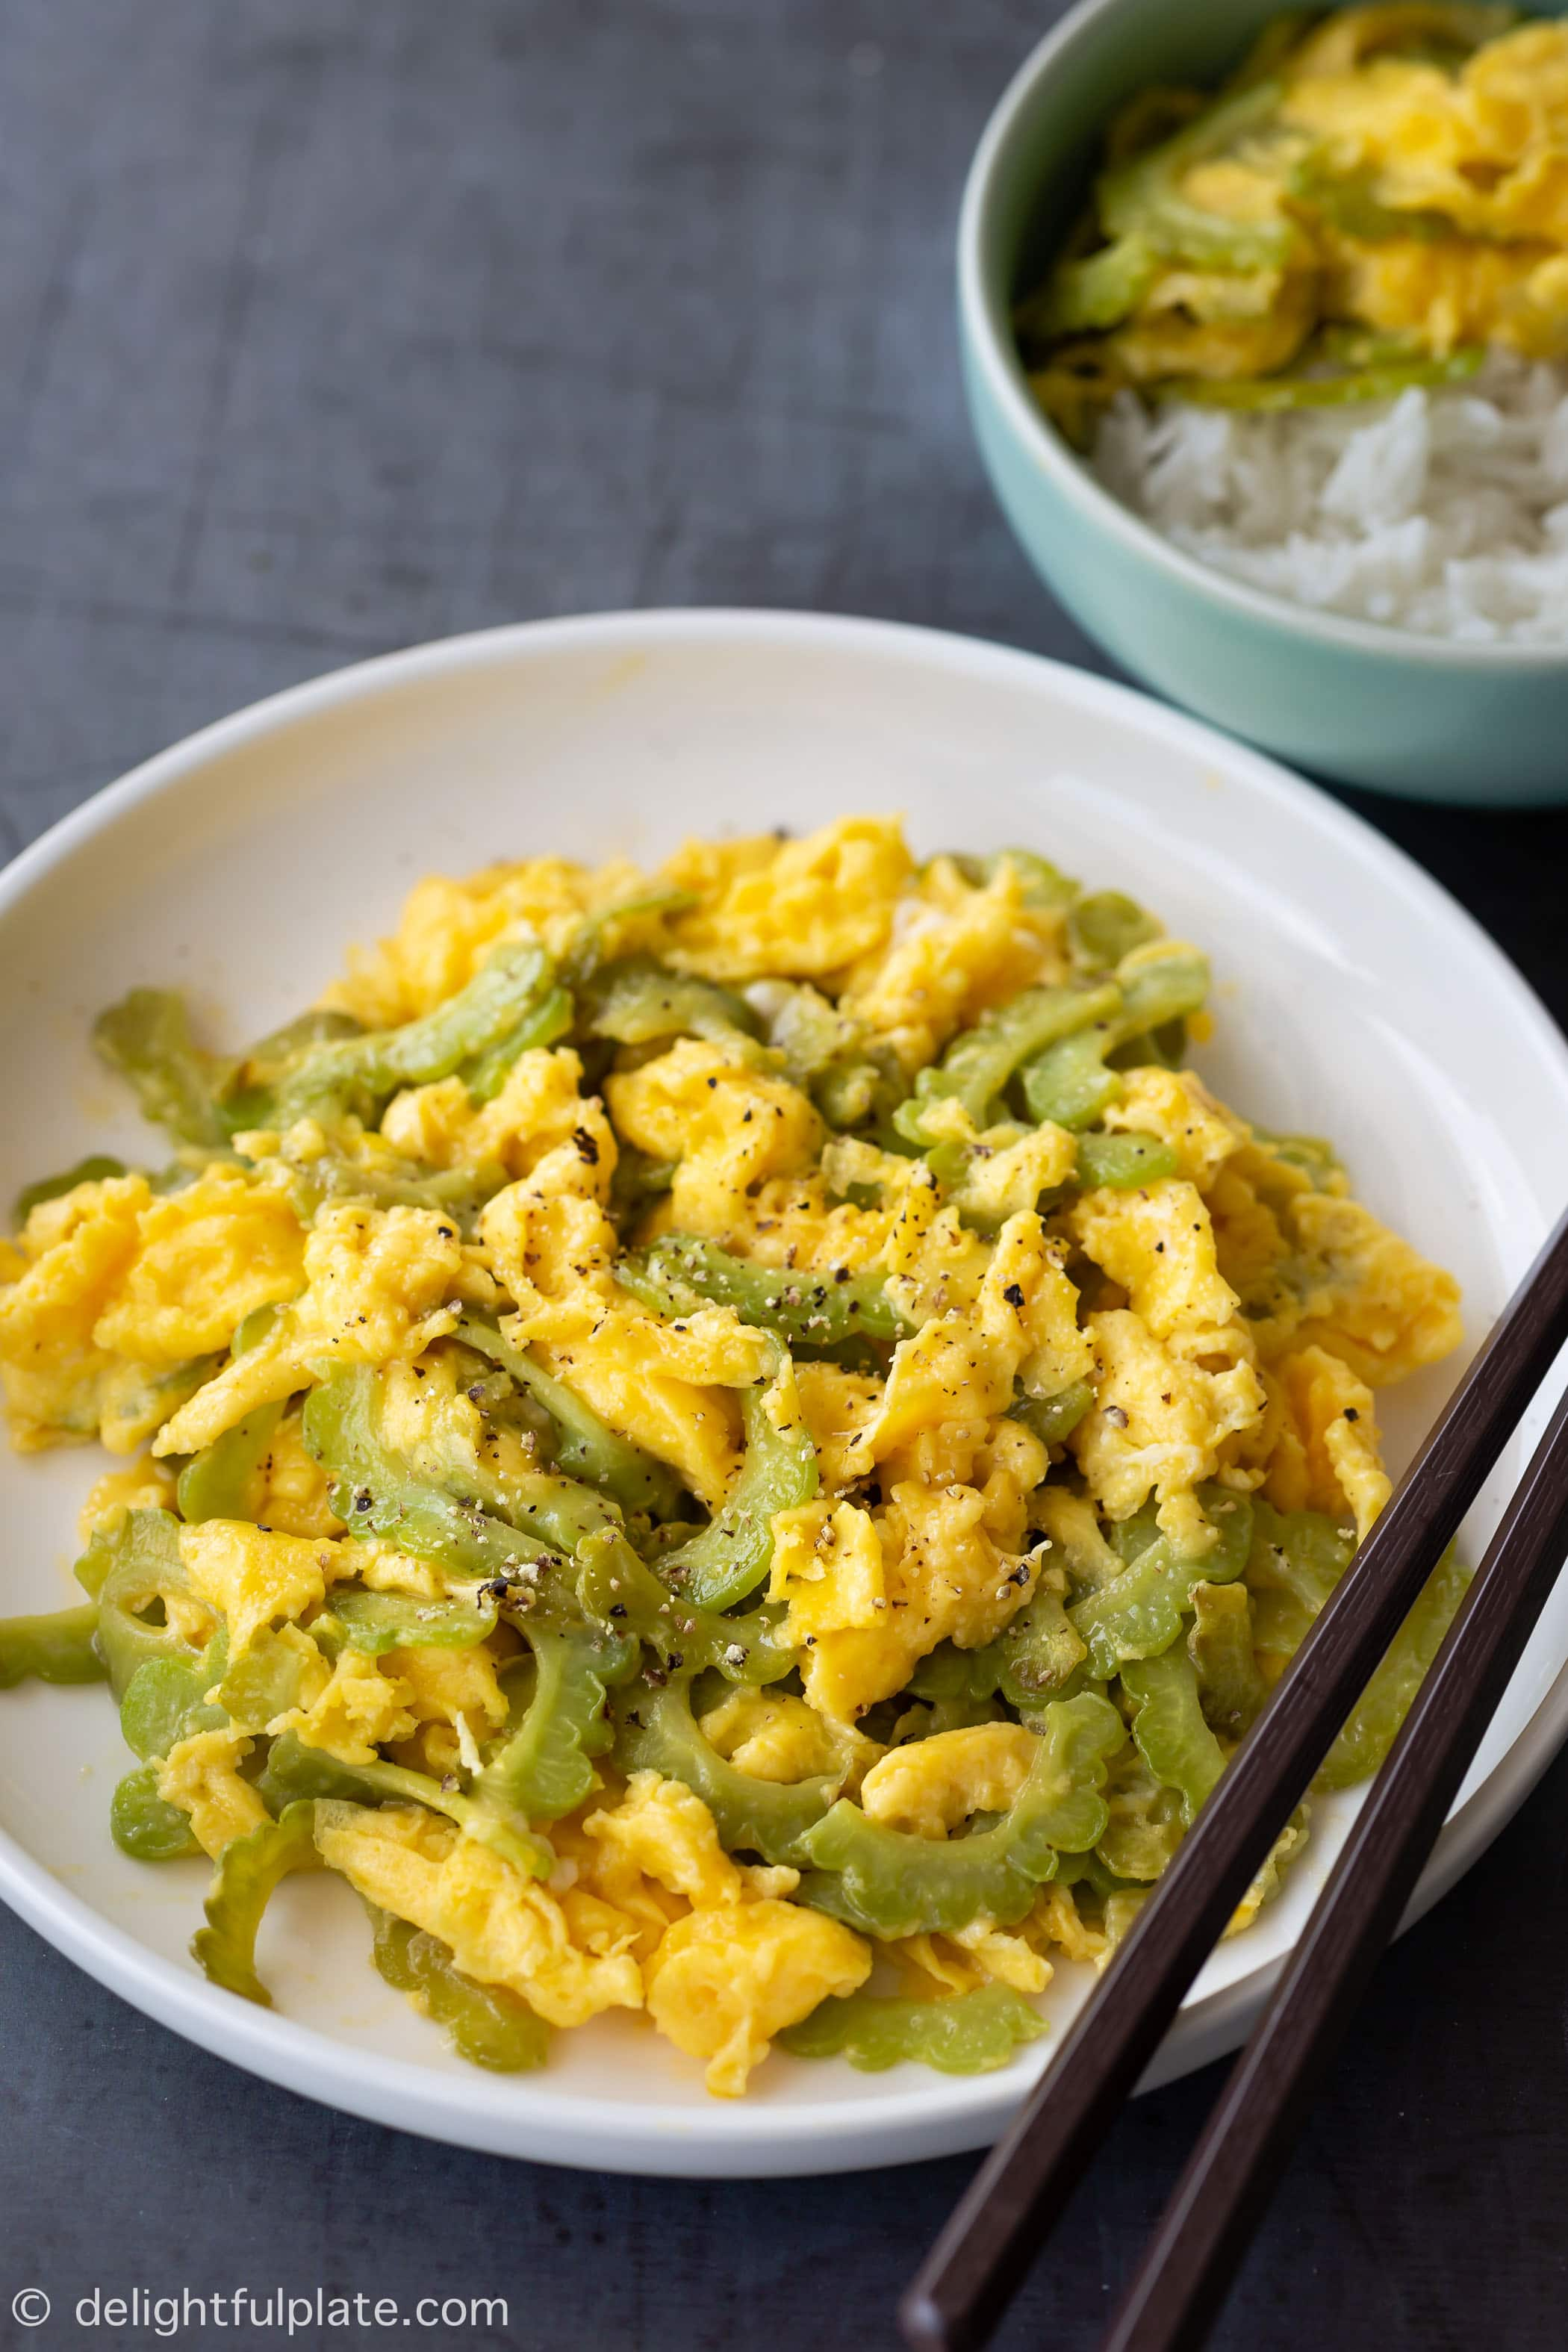 A plate of Vietnamese Bitter Melon Stir-Fry with Eggs (Muop Dang Xao Trung). This is a quick and easy dish with health benefits. It requires very few ingredients and you need just one pan to cook it.